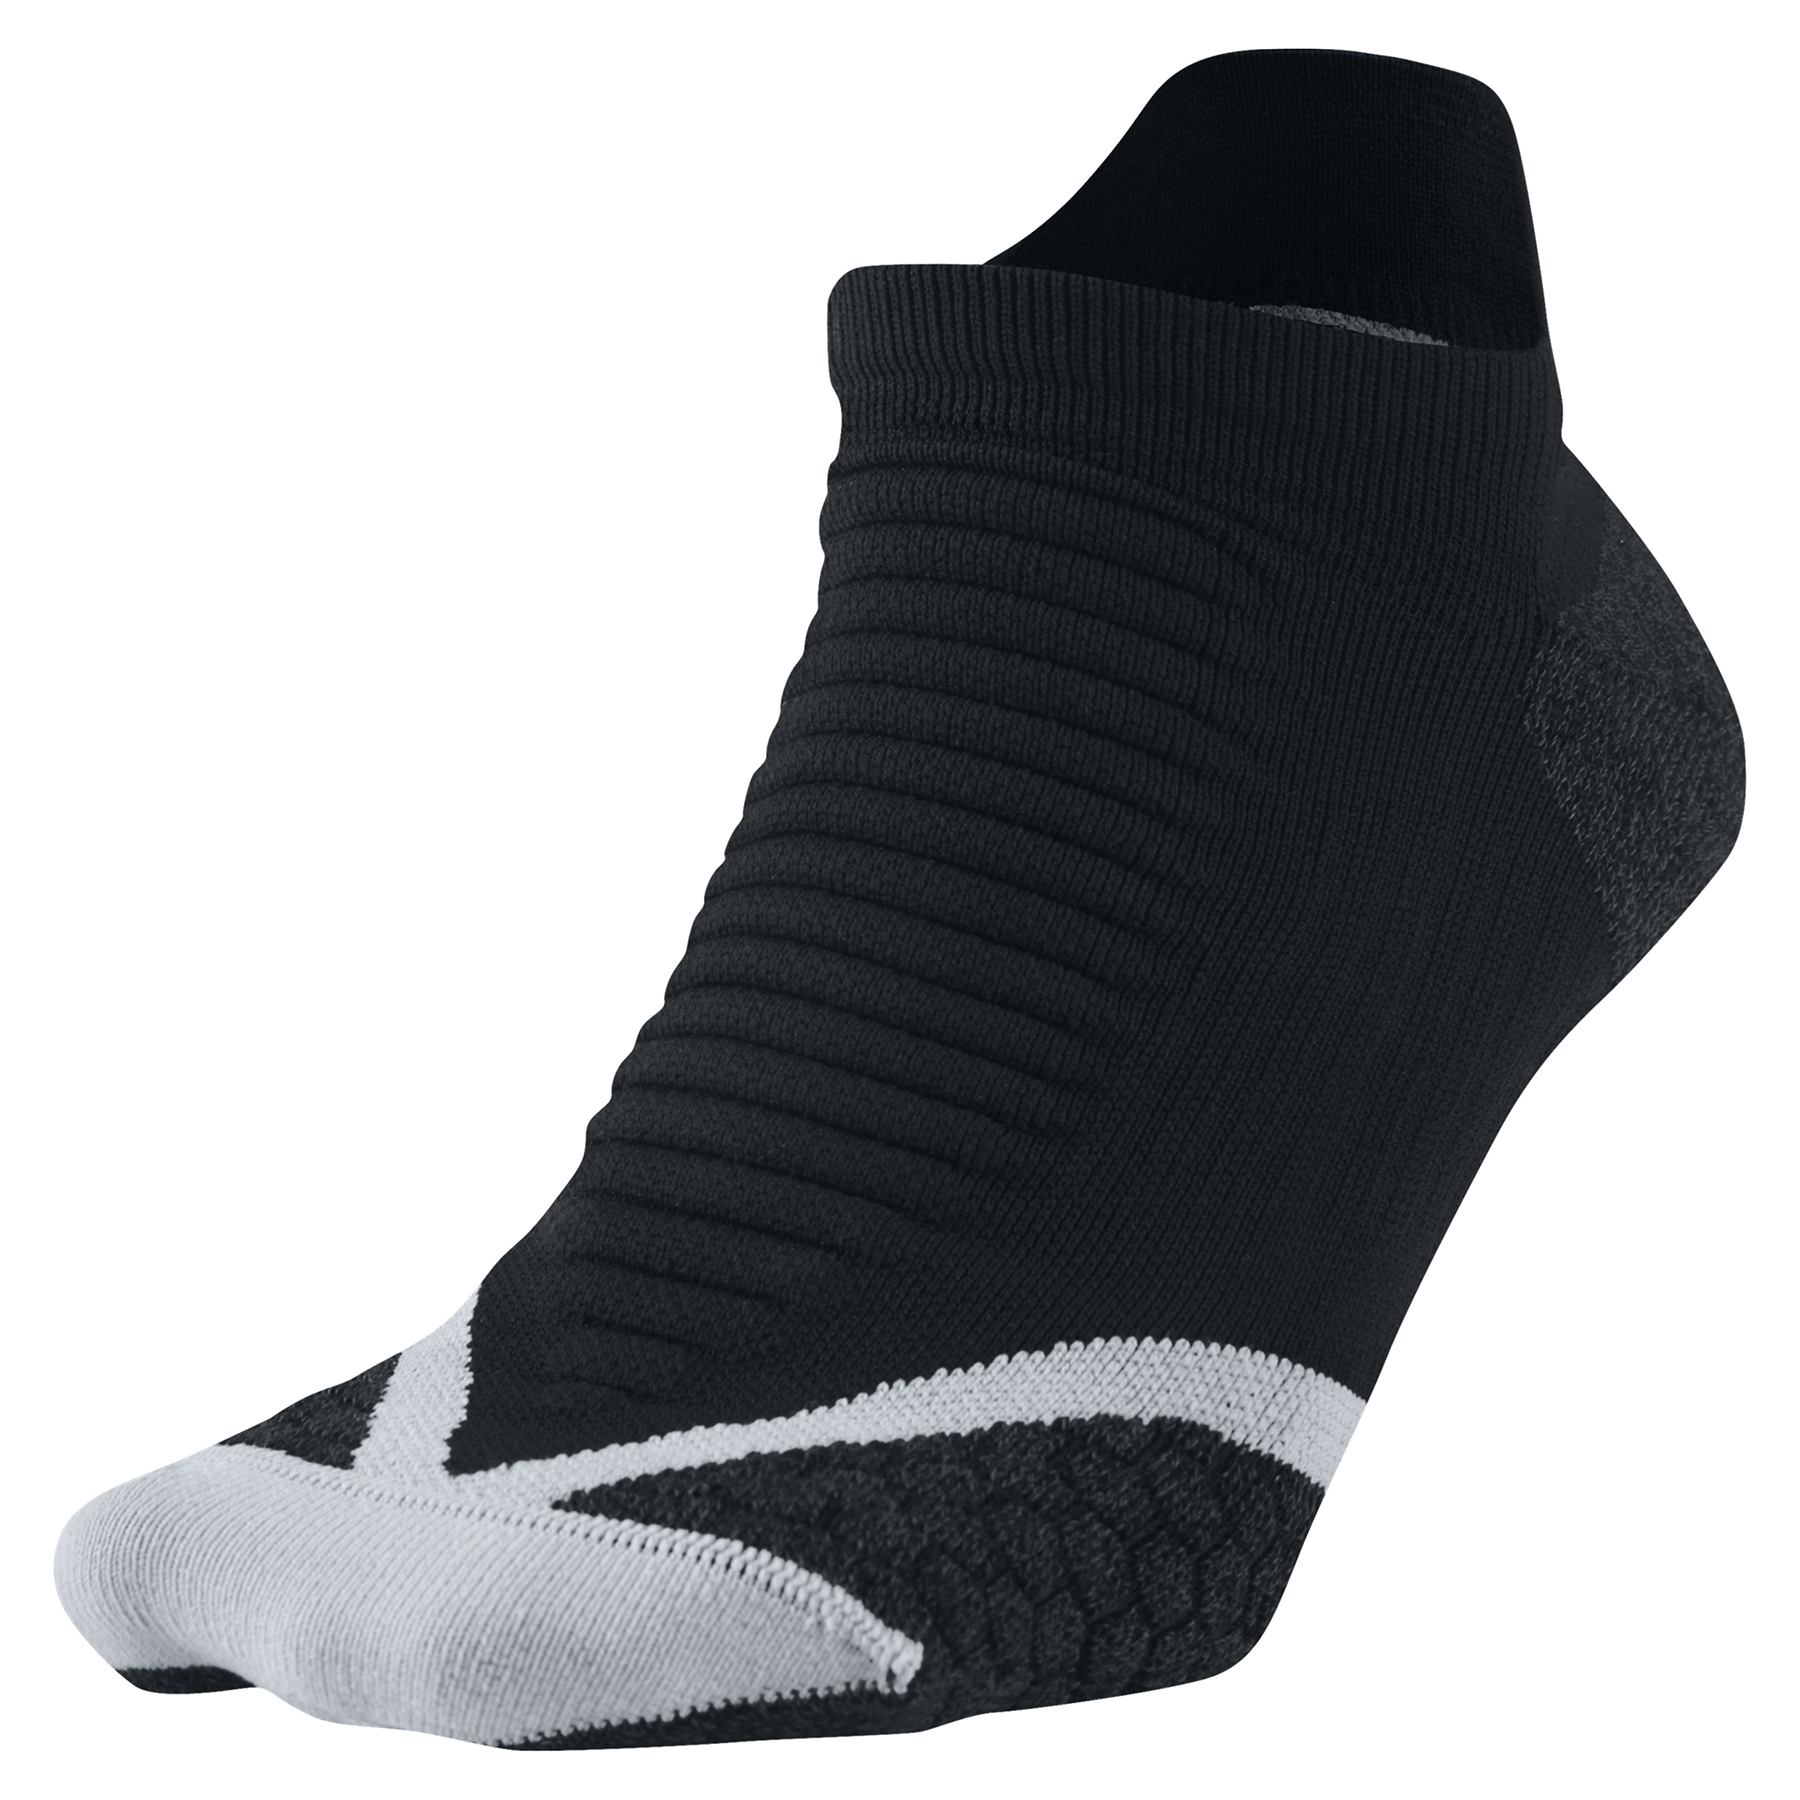 Nike Elite Running Cushion Sock Black